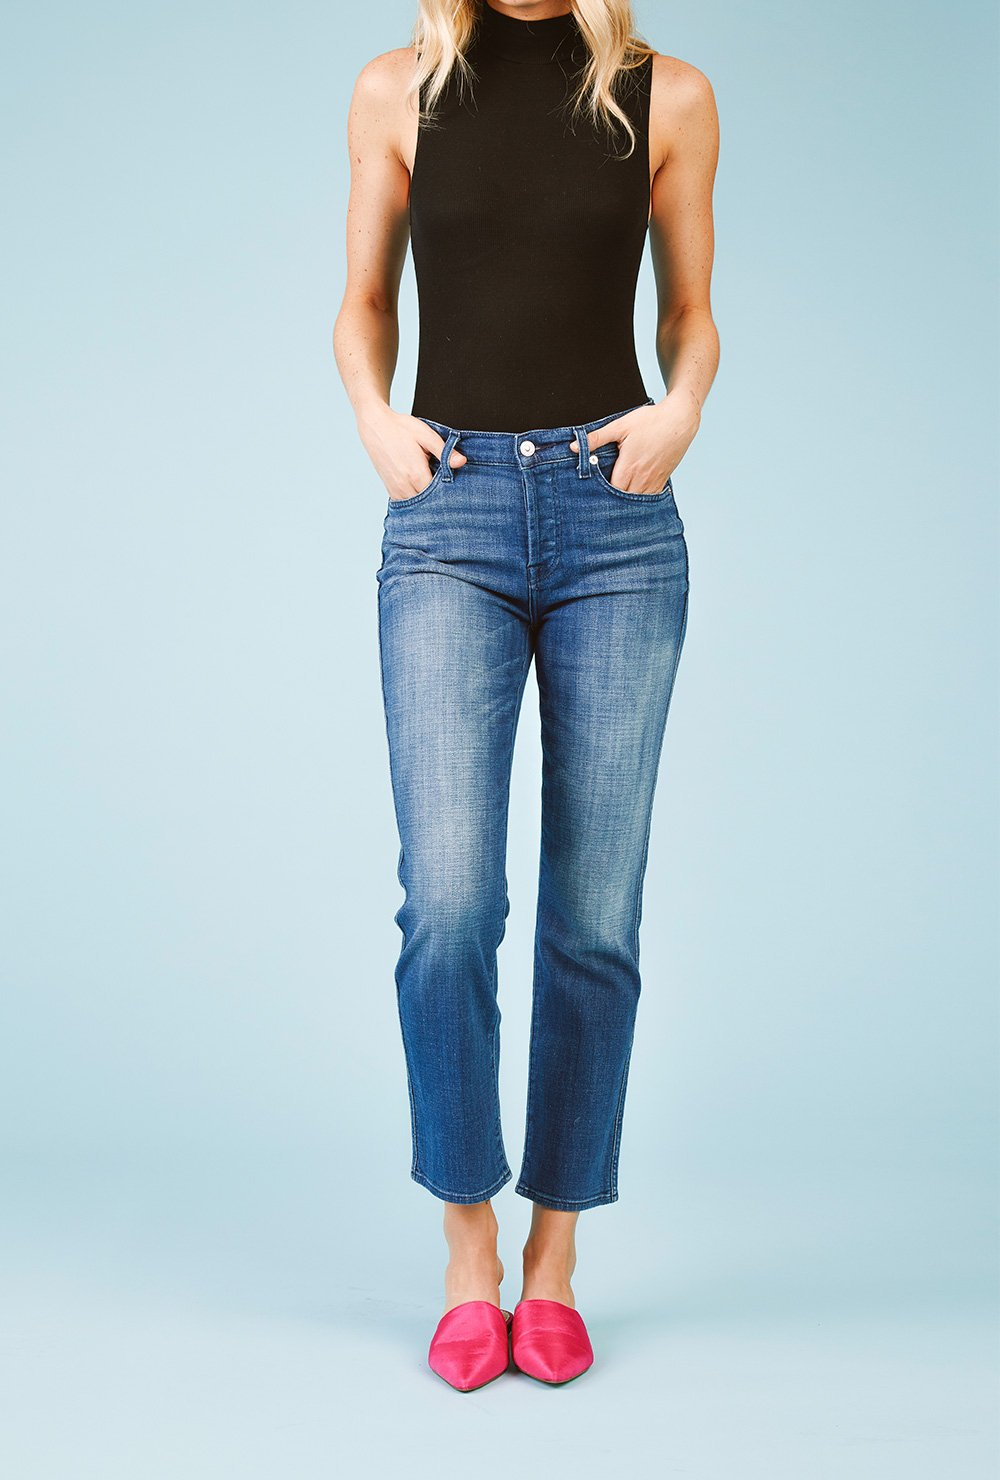 image links to assortment of new womens jeans